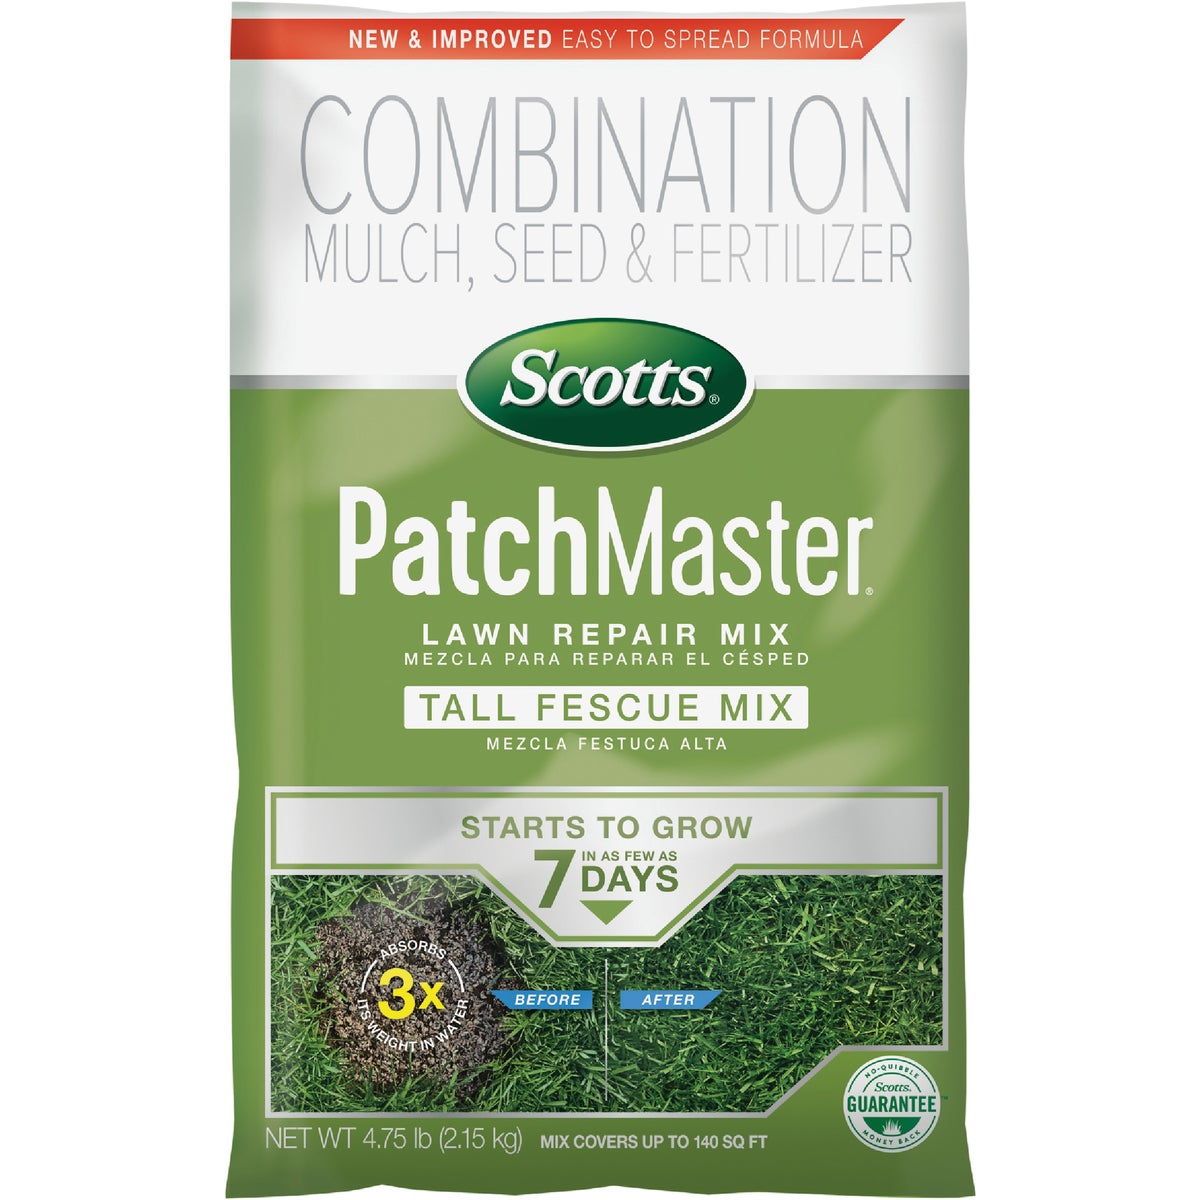 5LB FESCUE PATCHMASTER - 14970 by Scotts Company